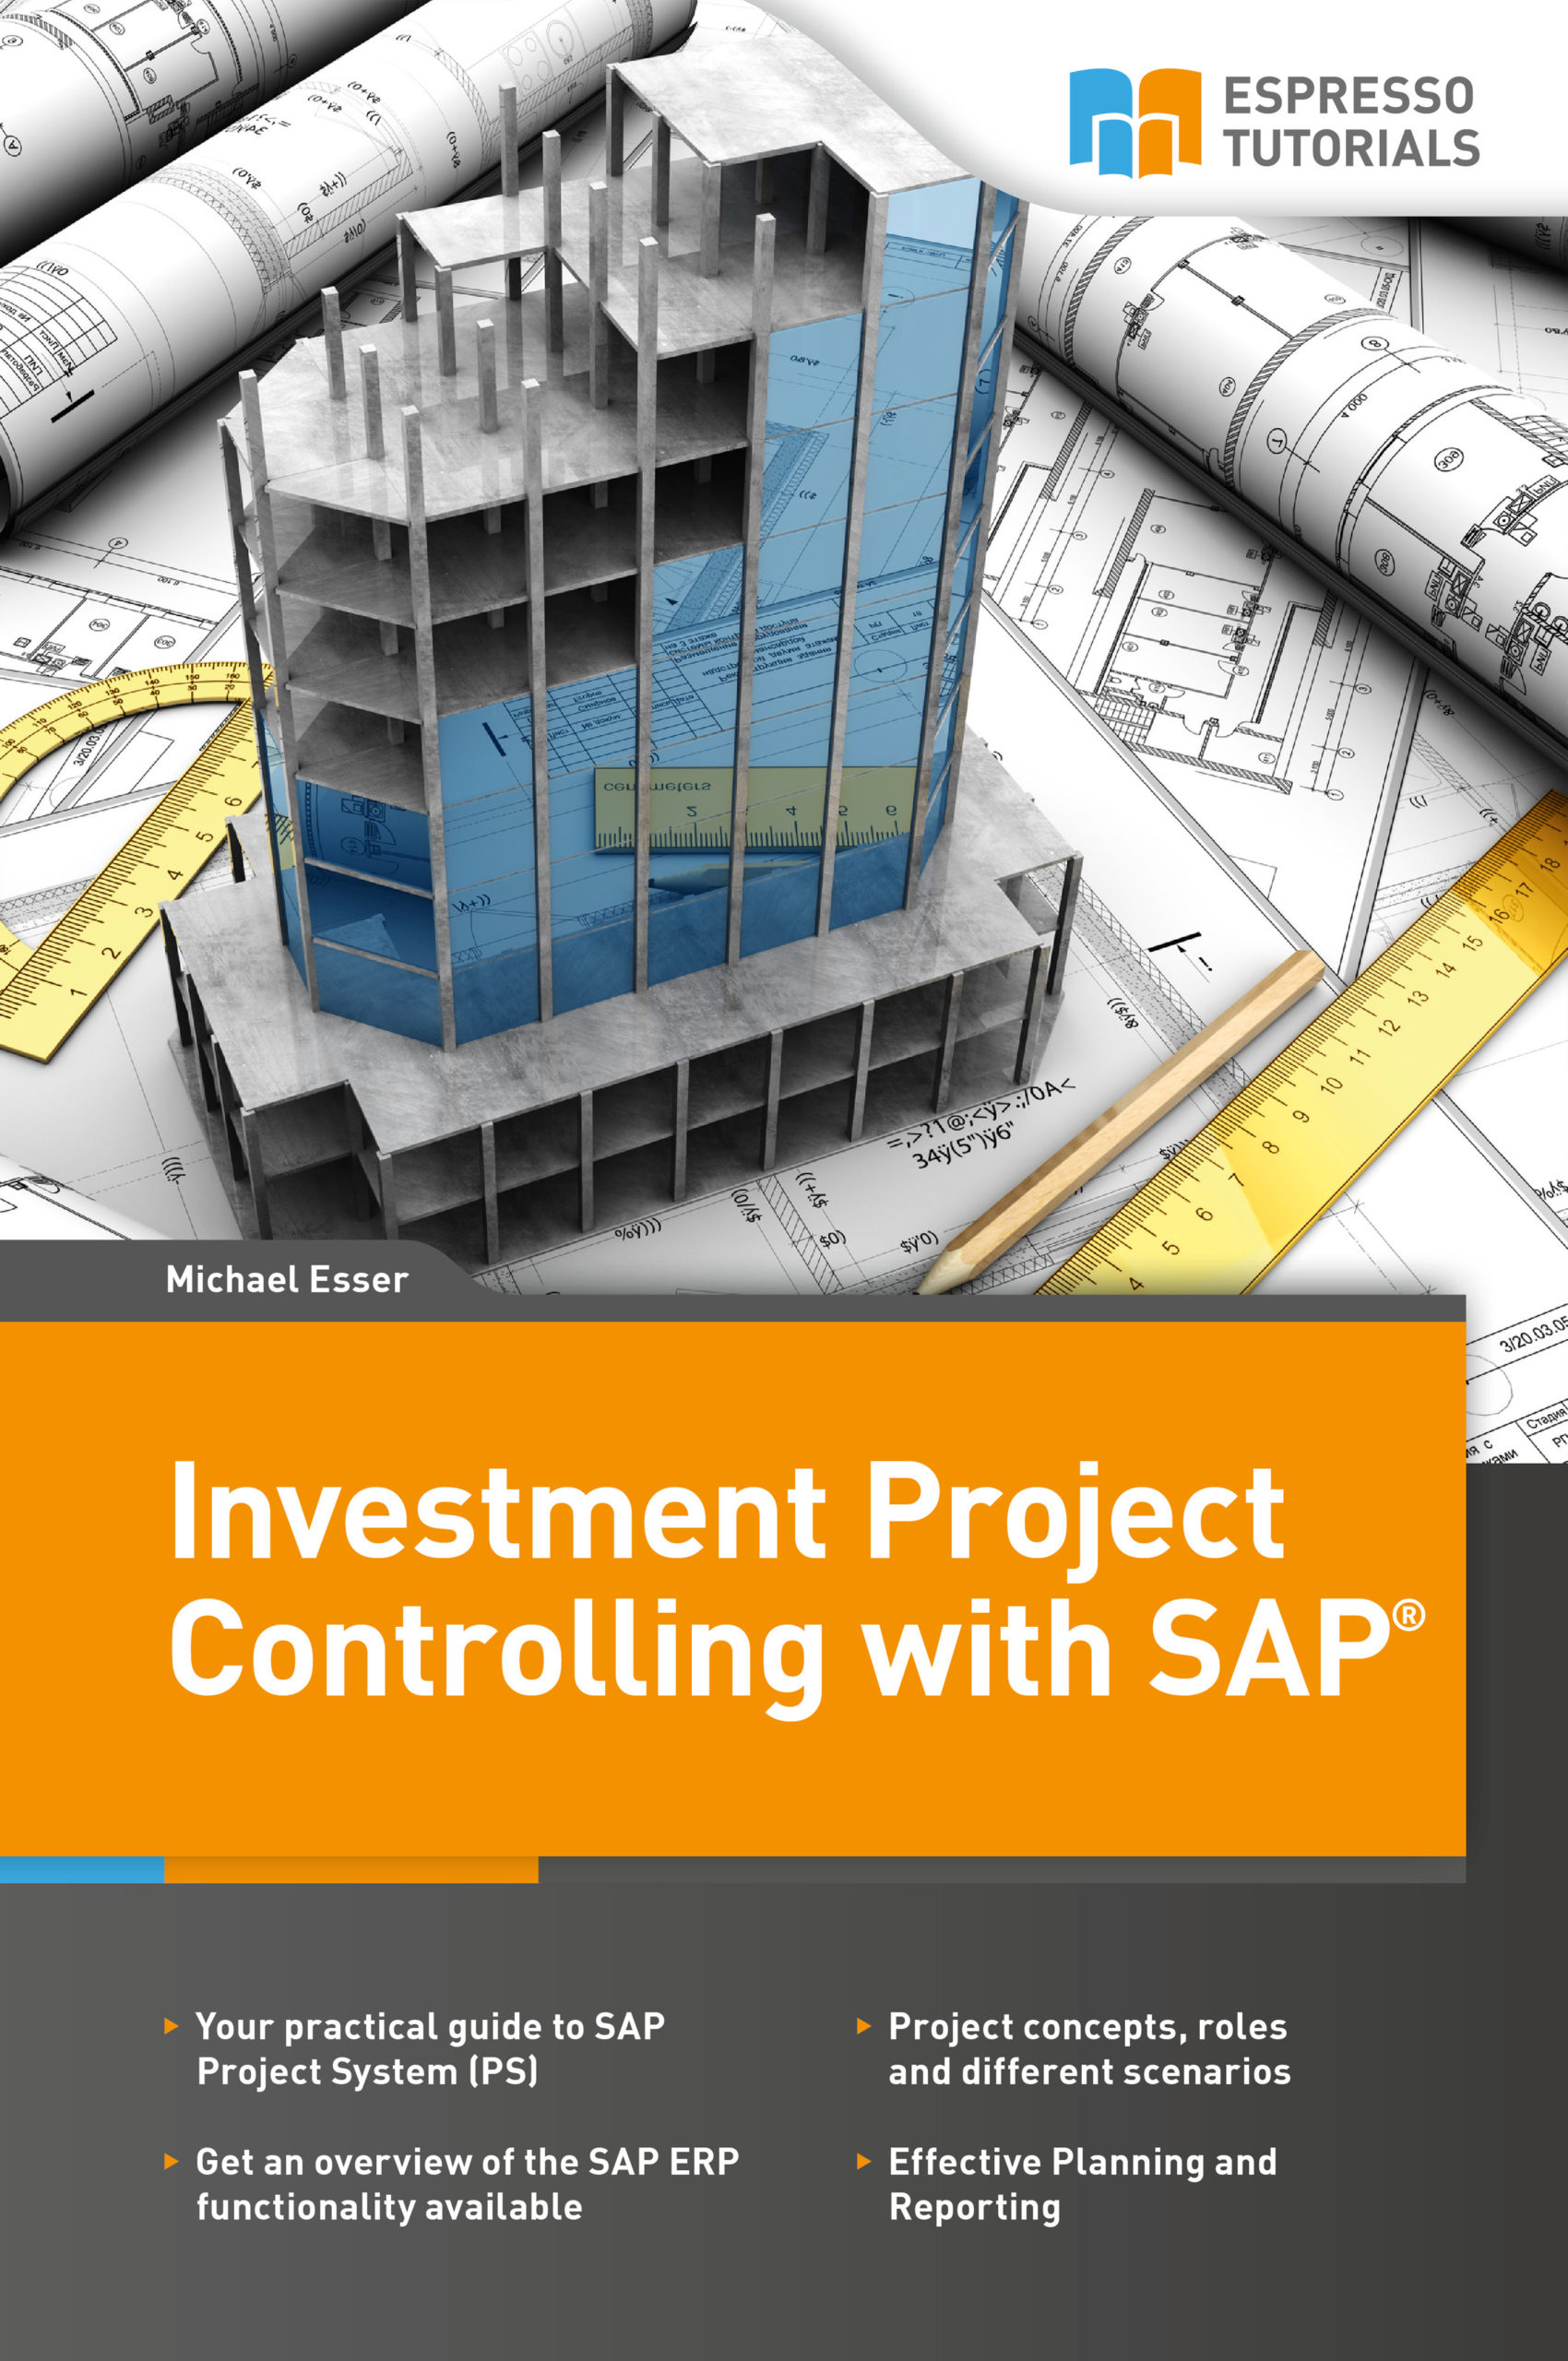 Investment Project Controlling with SAP